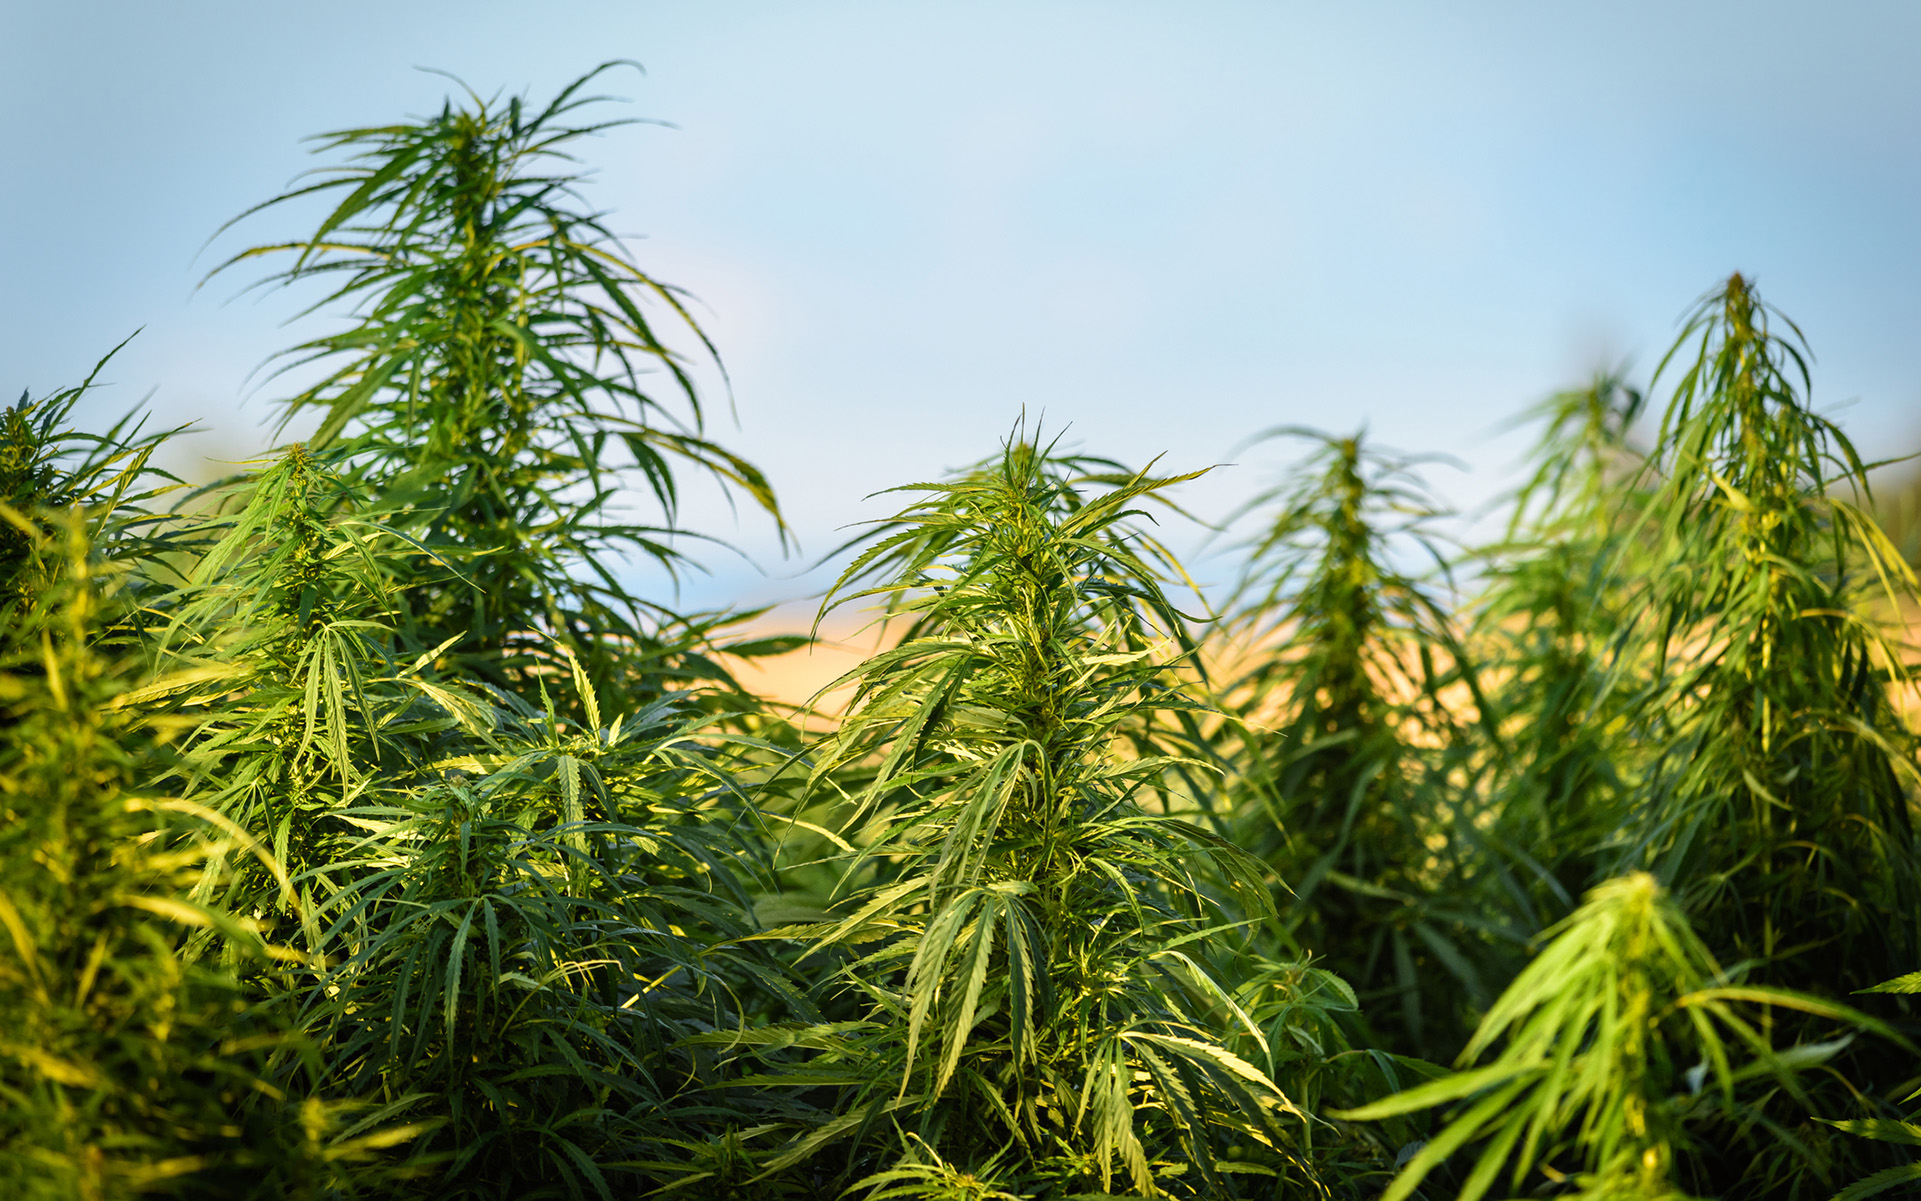 Do Farmers Have a Legal Right to Grow Cannabis? | Leafly